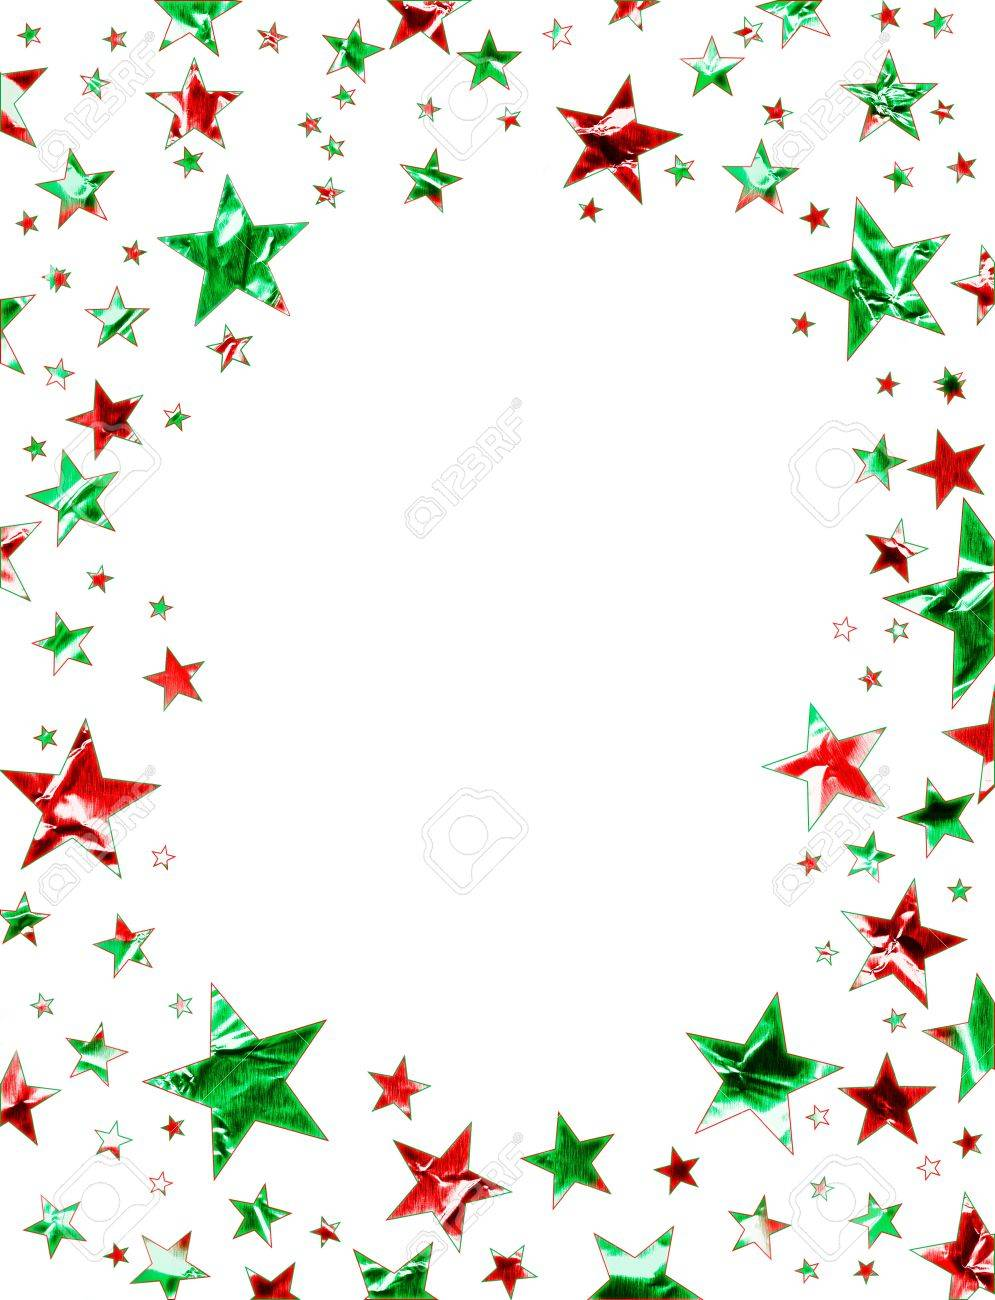 A star field of green and red stars on a white background Stock Photo - 10405479